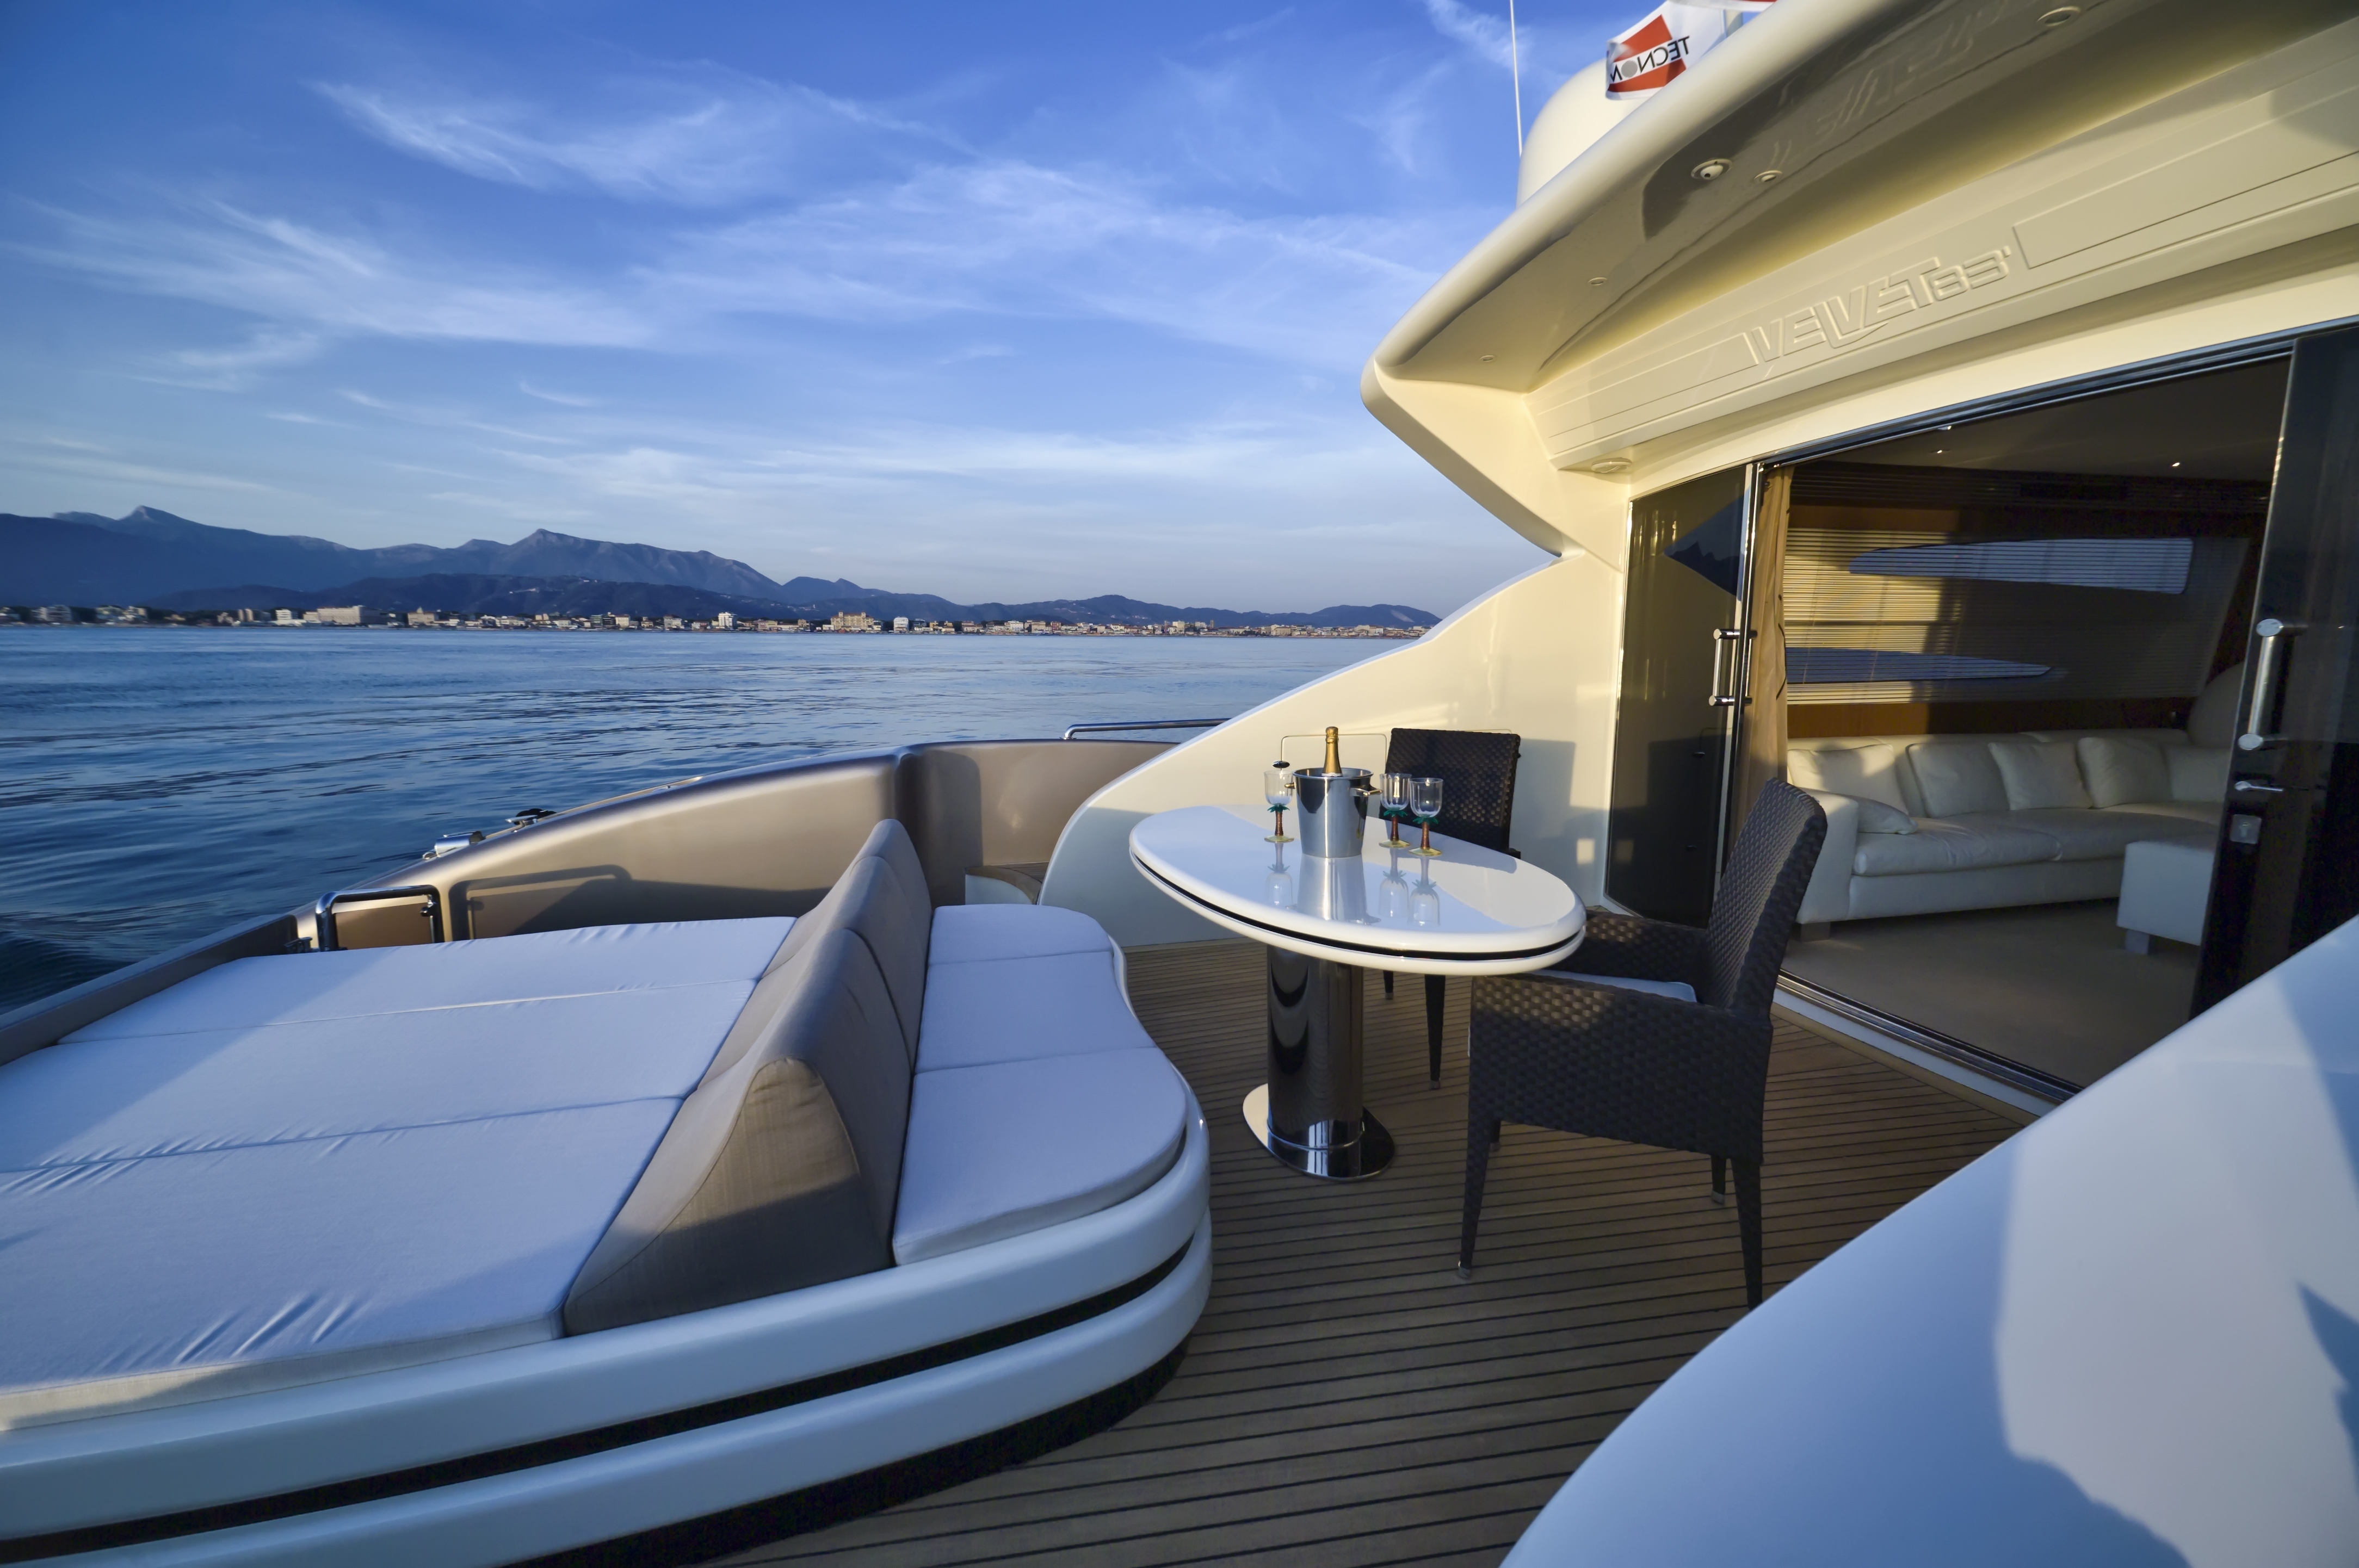 The first Versilia Yachting Rendez-vous will be held in Tuscany Viareggio, May 2017